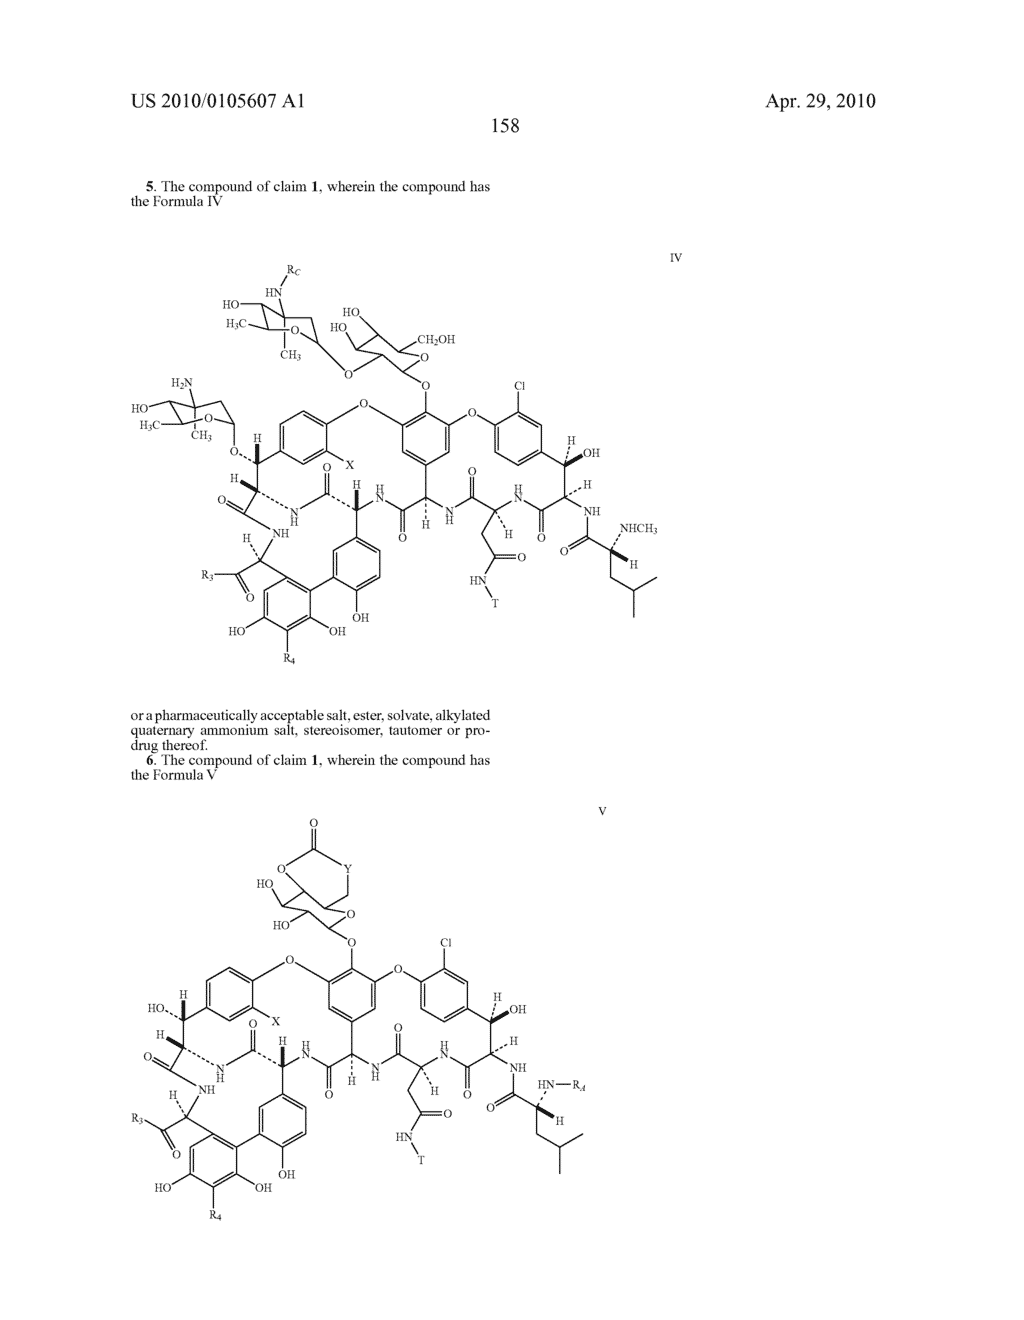 NOVEL SEMI-SYNTHETIC GLYCOPEPTIDES AS ANTIBACTERIAL AGENTS - diagram, schematic, and image 158